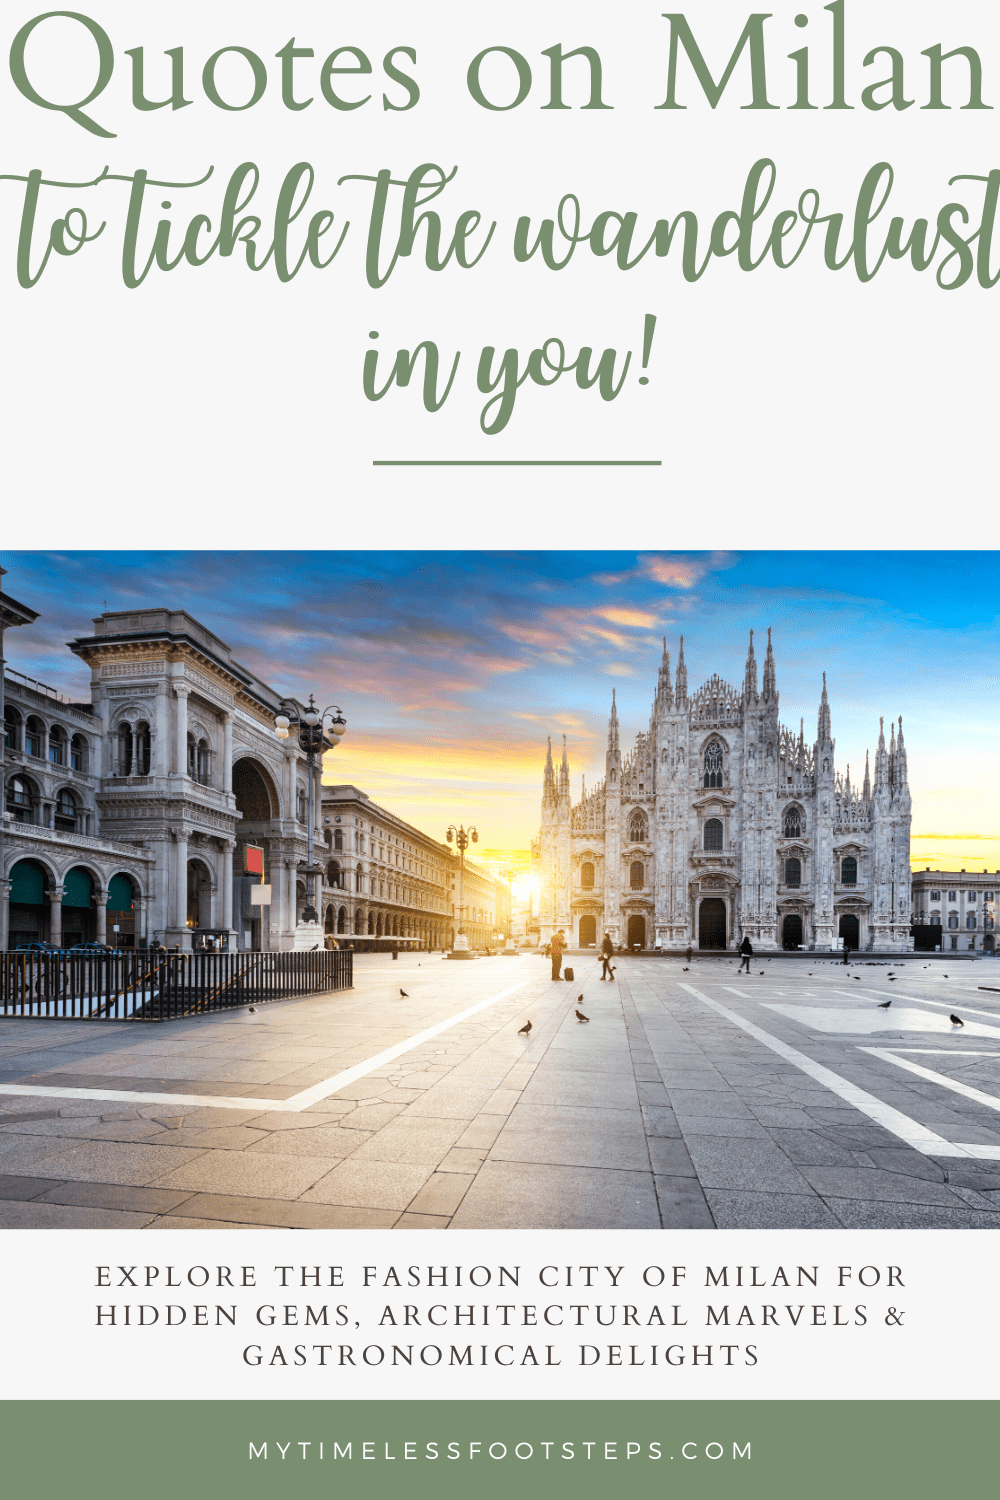 Lovely quotes on Milan that will tickle the wanderlust in you to explore this ancient city of hidden gems, architectural marvel and gastronomical delight via @GGeorgina_mytimelessfootsteps/